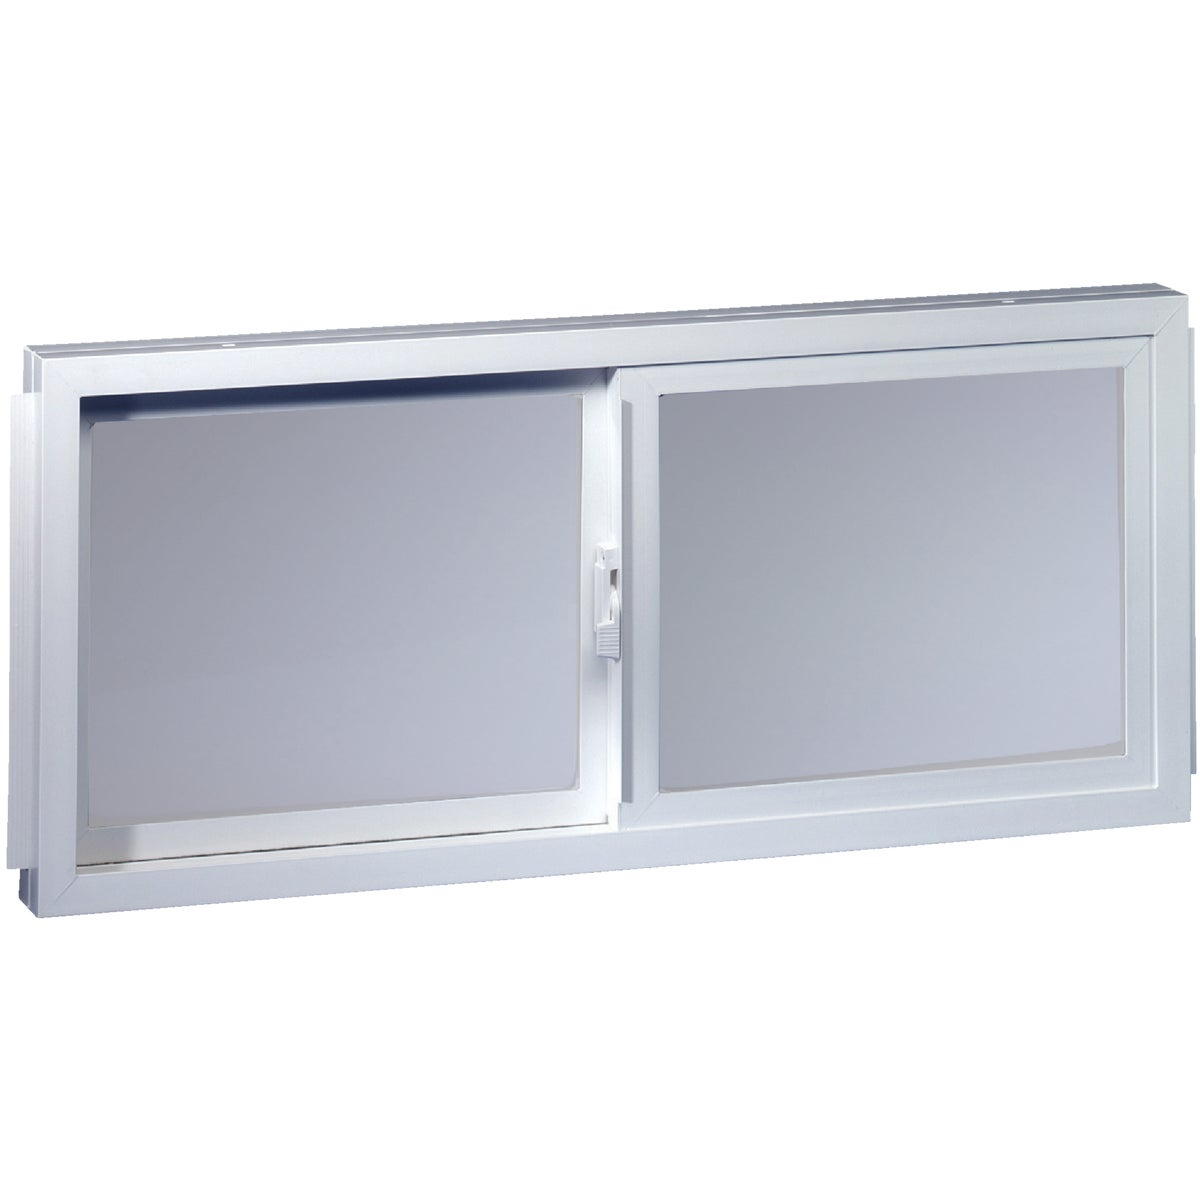 WHT BSMT SLDR WINDOW - 3218 by Duo Corp